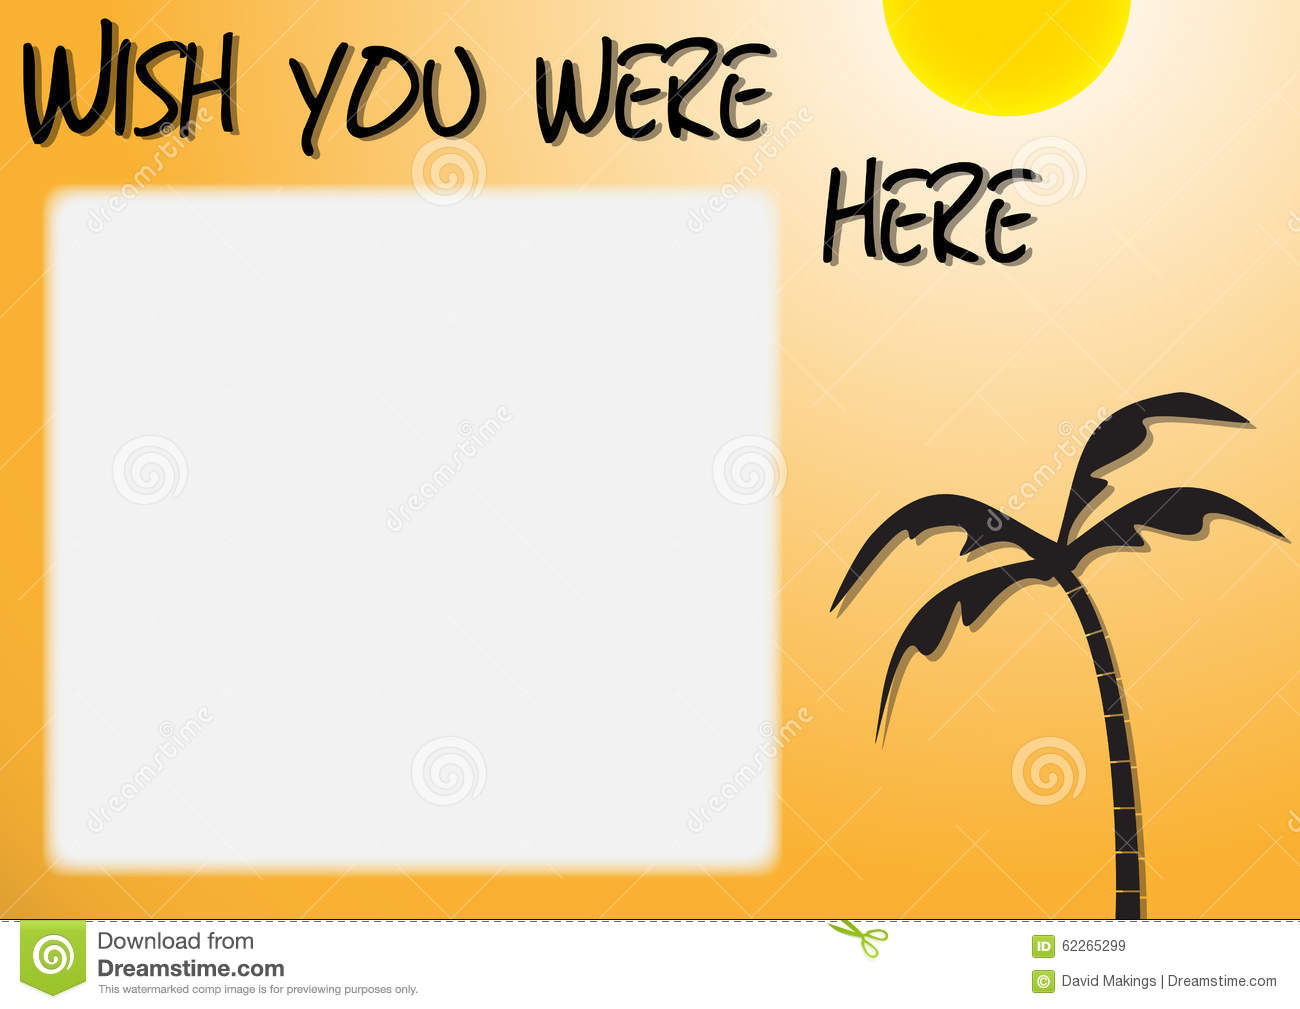 Wish You Were Here Card Topsimages